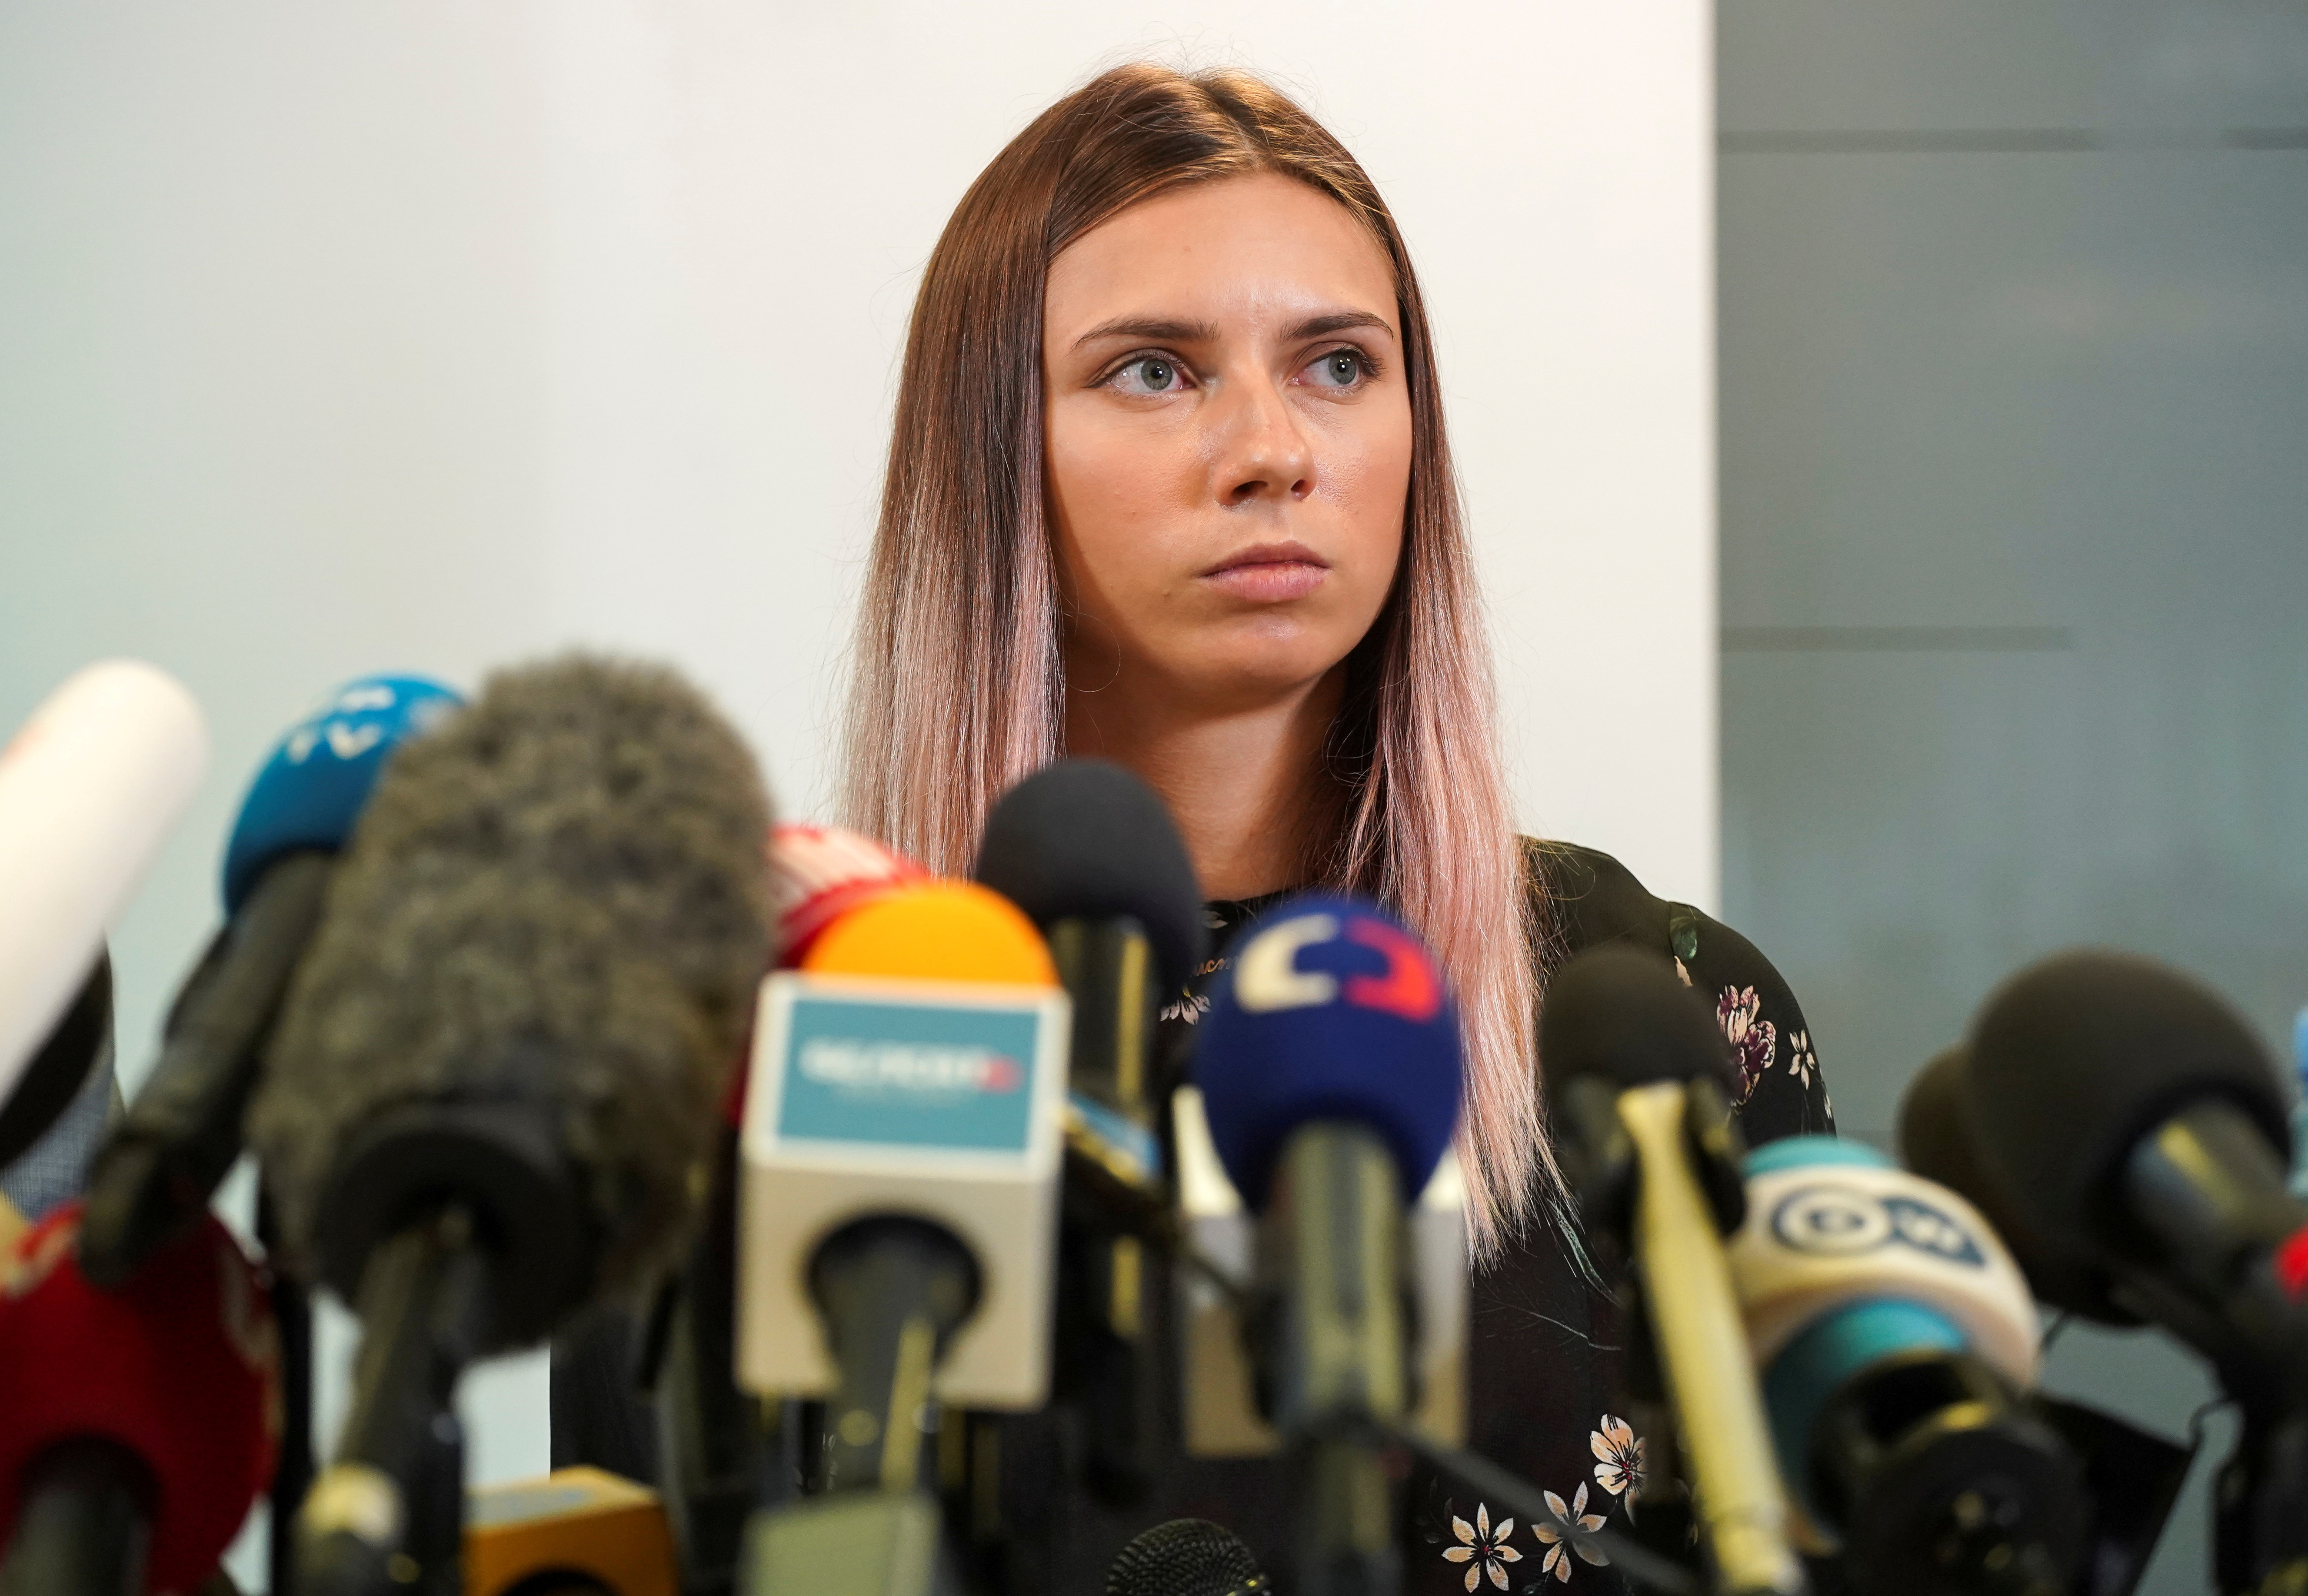 Belarusian sprinter Krystsina Tsimanouskaya, who left the Olympic Games in Tokyo and seeks asylum in Poland, attends a news conference in Warsaw, Poland August 5, 2021. REUTERS/Darek Golik